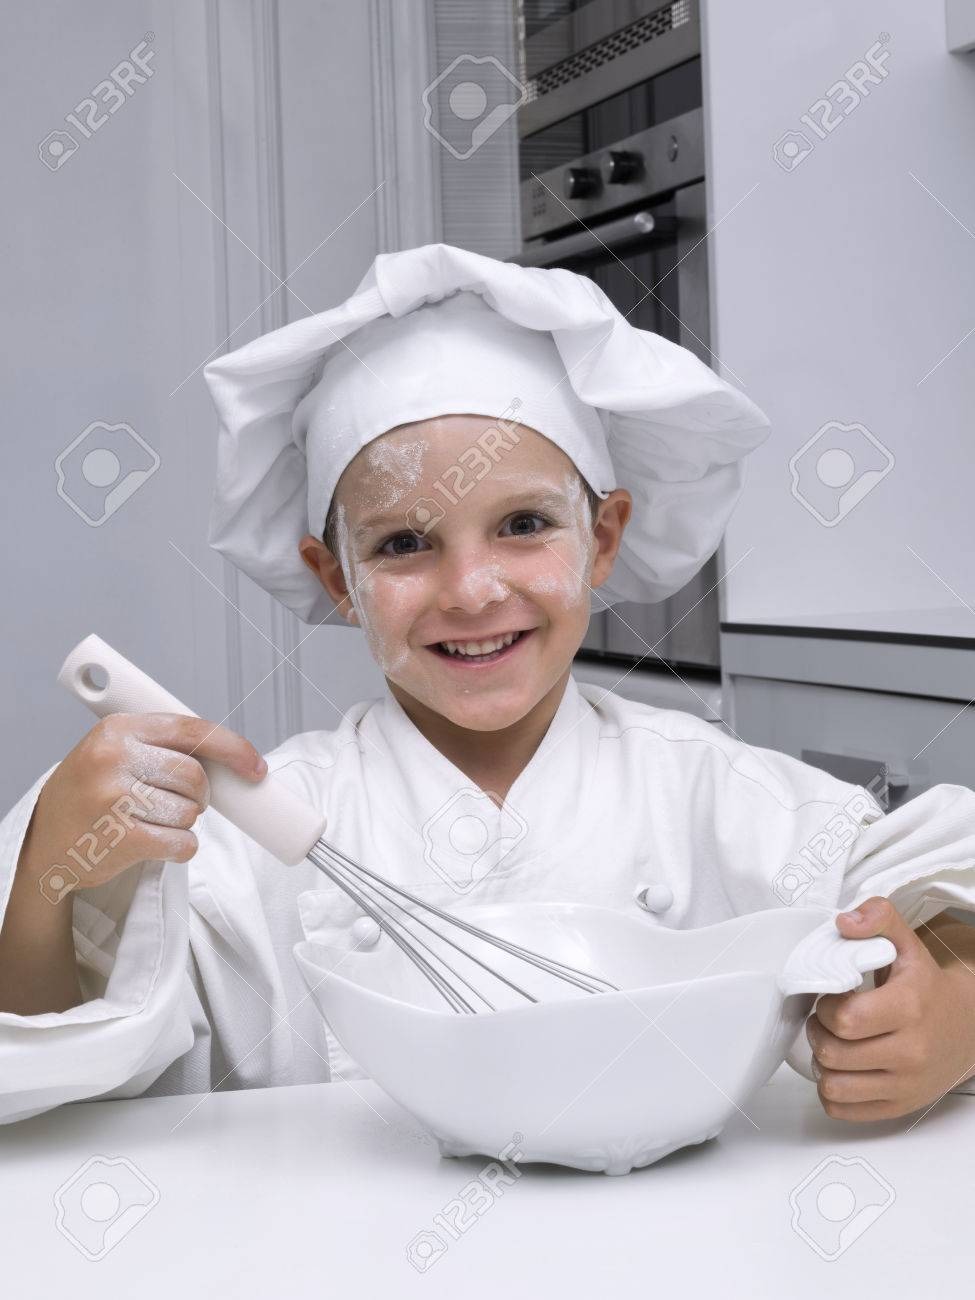 Children, dressed as a chef, with A beater in the hand - 38156224